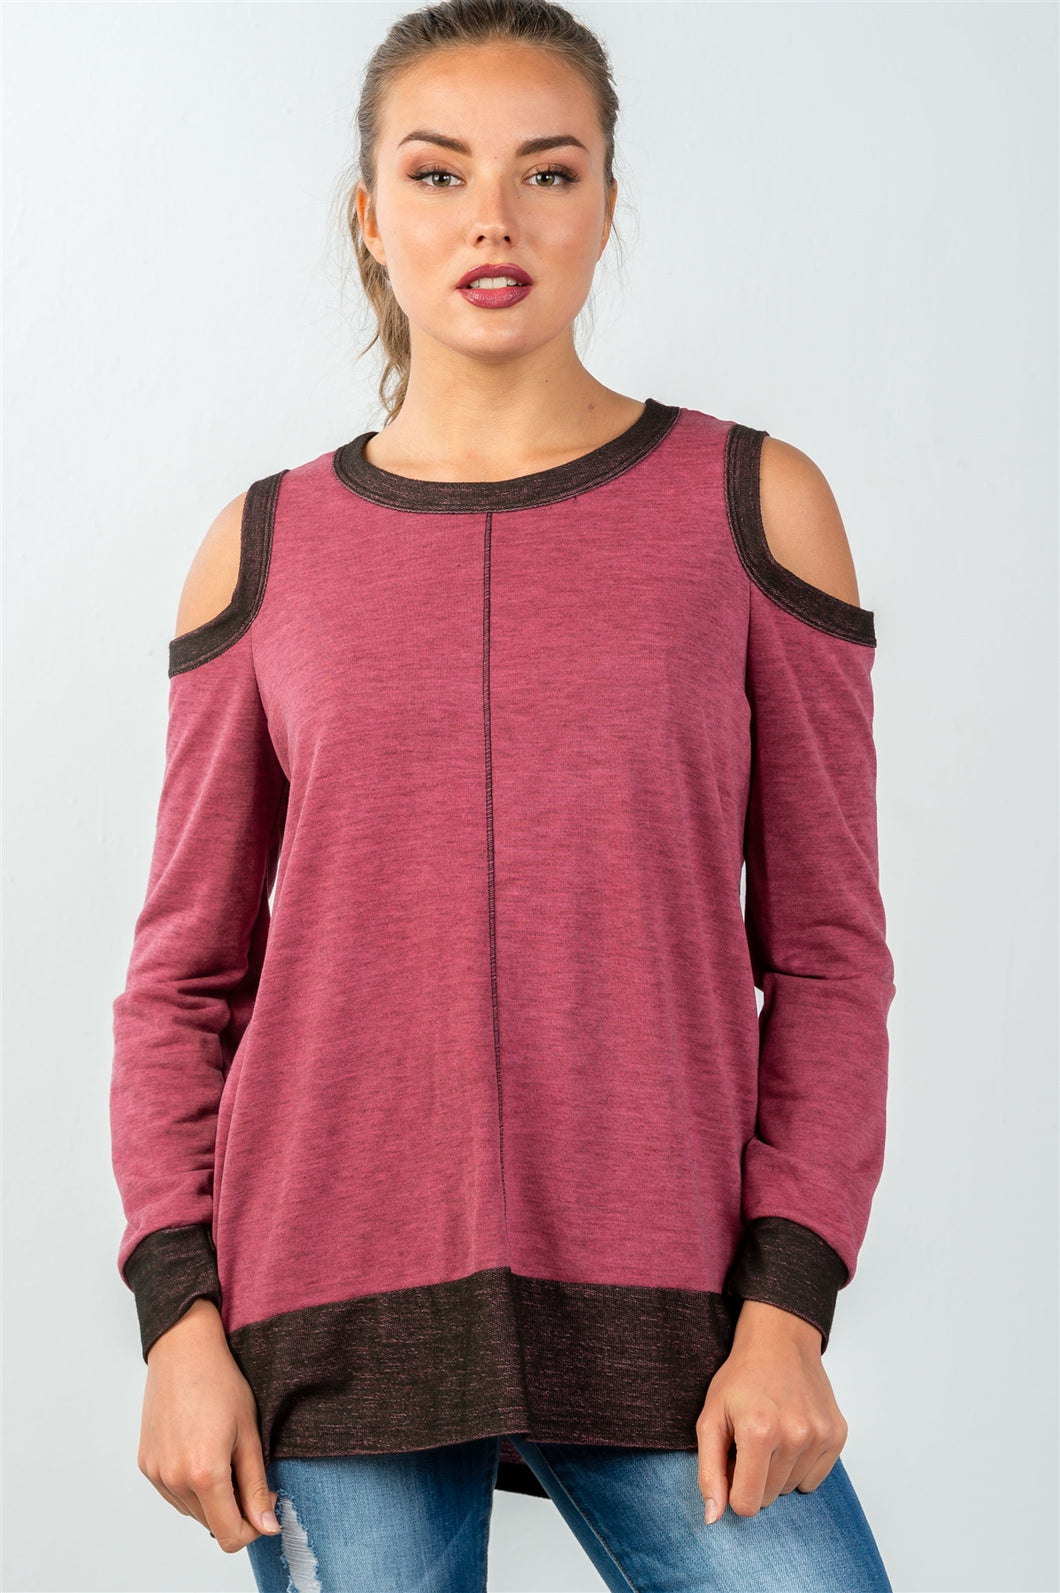 Ladies fashion cold shoulder hi-low colorblock sweatshirt - comfy-cozy18